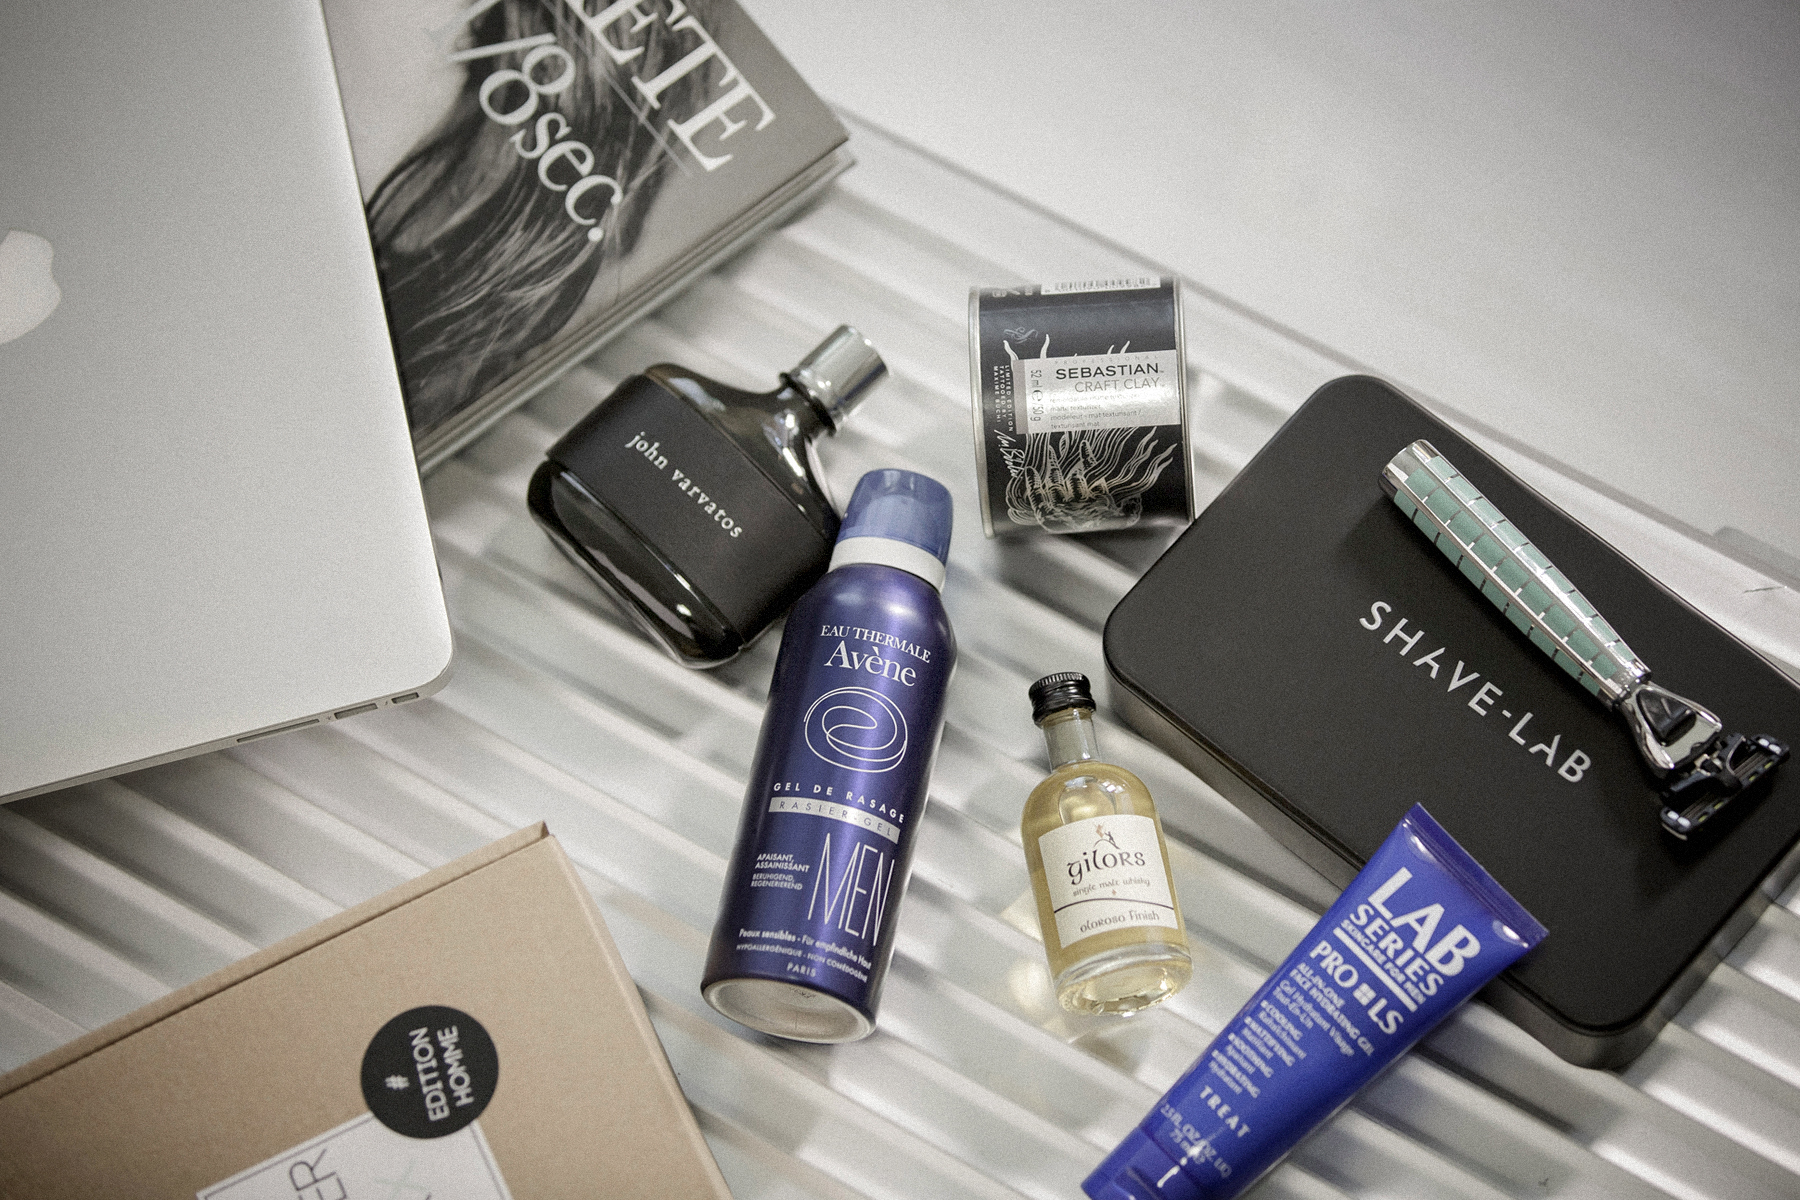 blogger boxx edition homme avène sebastian professional LAB series shavelab menbeauty mensbeauty männerbeauty männerblog männerblogger menblogger photography jim rakete photography max bechmann dandy style männerstyle modeblogger cats & dogs modeblog 8